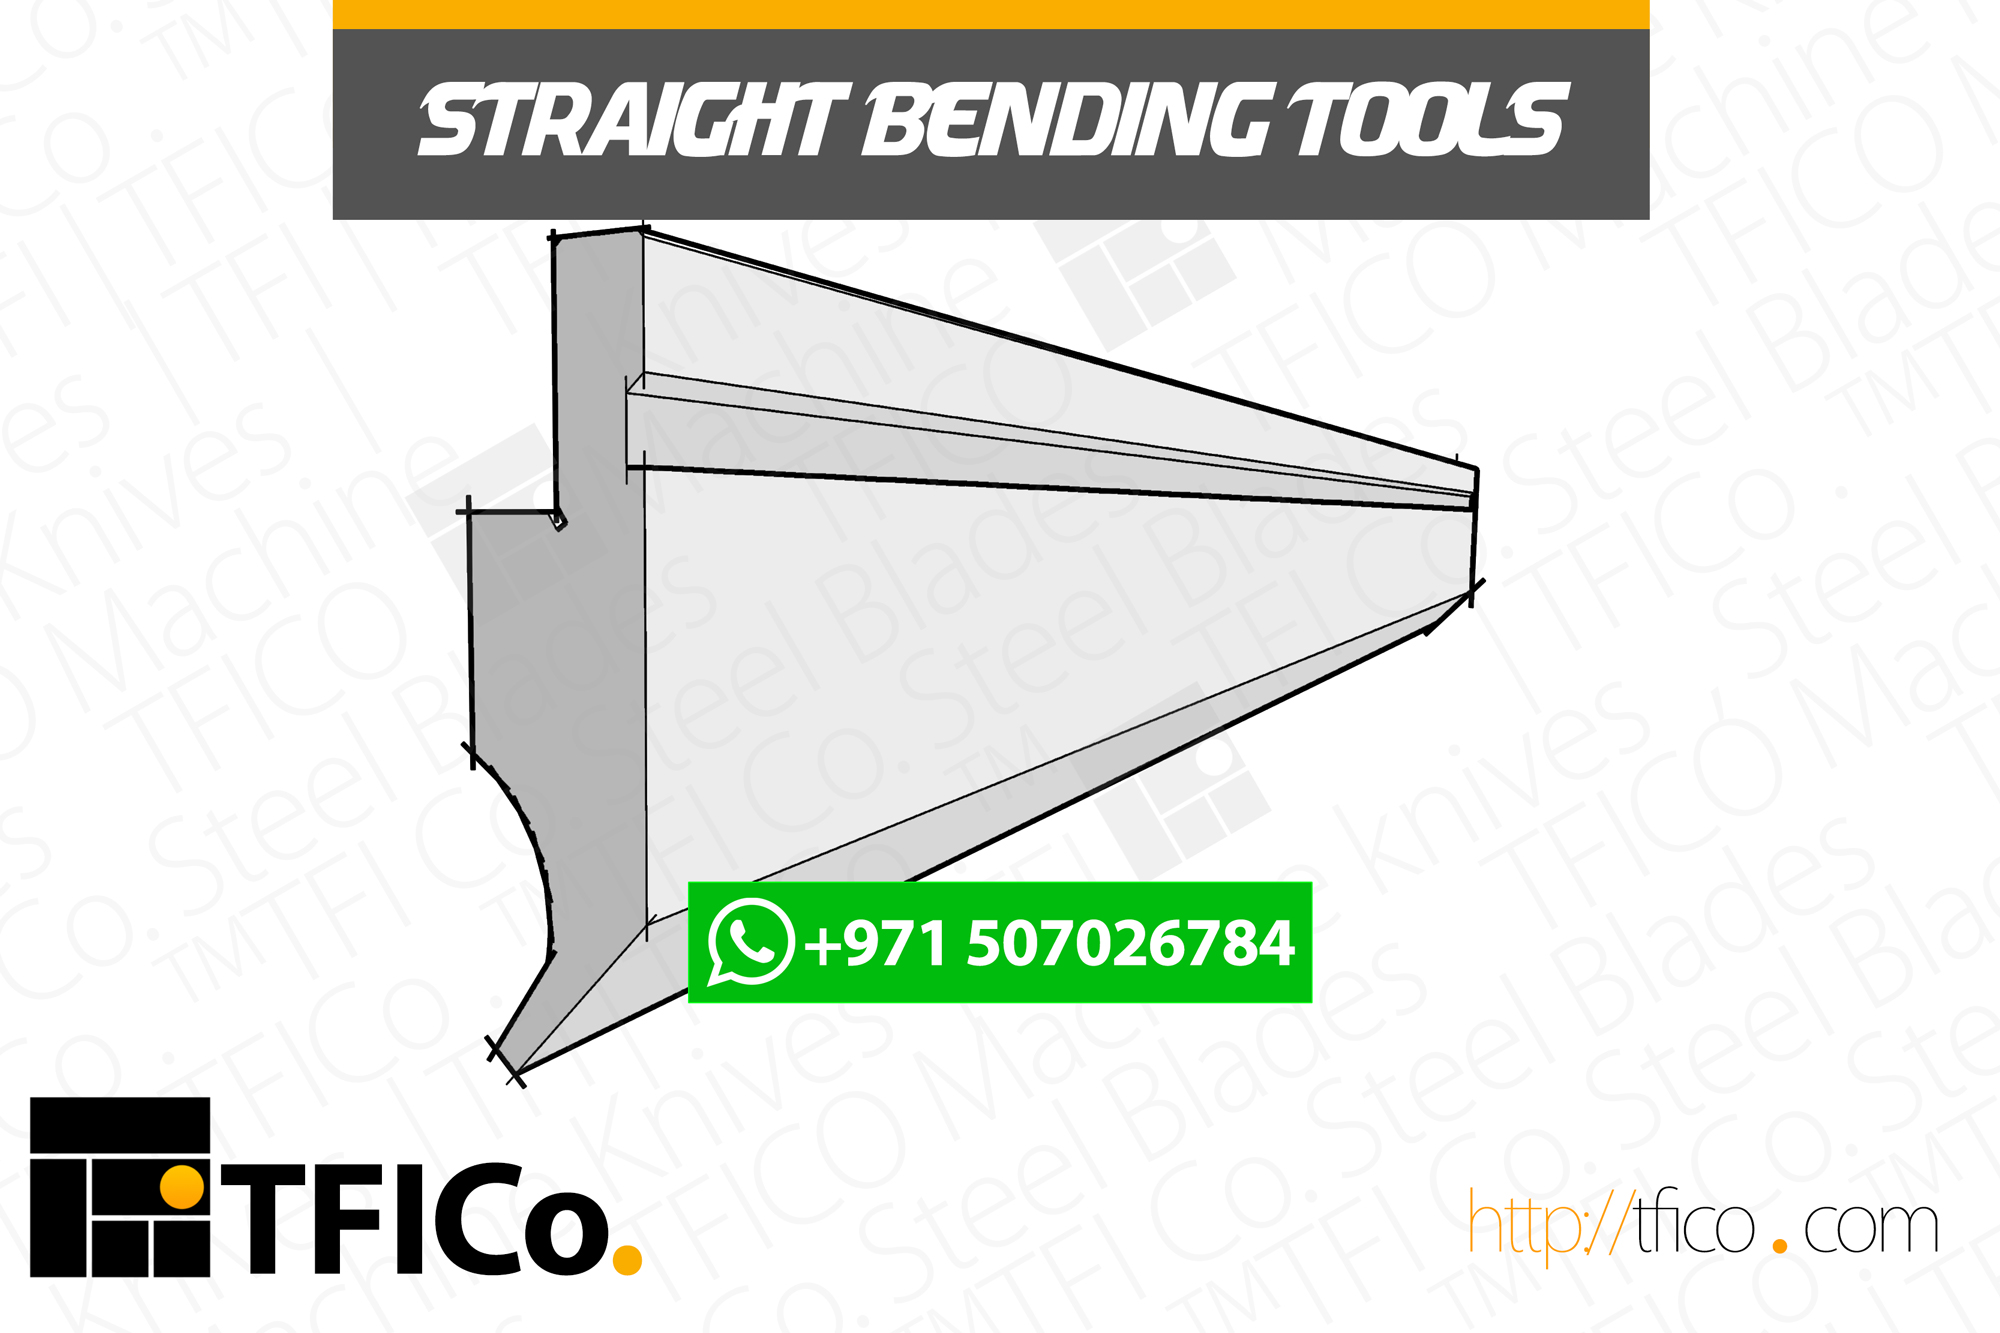 straight , punch, bending, tools, tfico, machine knives, uae, saudi, bending, hemming, accute, accurate, precision, alloy steel, hardened , baykal, amada, united arab, emriates, jeddah , roller, i, dayyani, ghafoor, haj, ghasem dastouri, tfico, press brake tools , iraq, afghanistan, mmmm, yeas